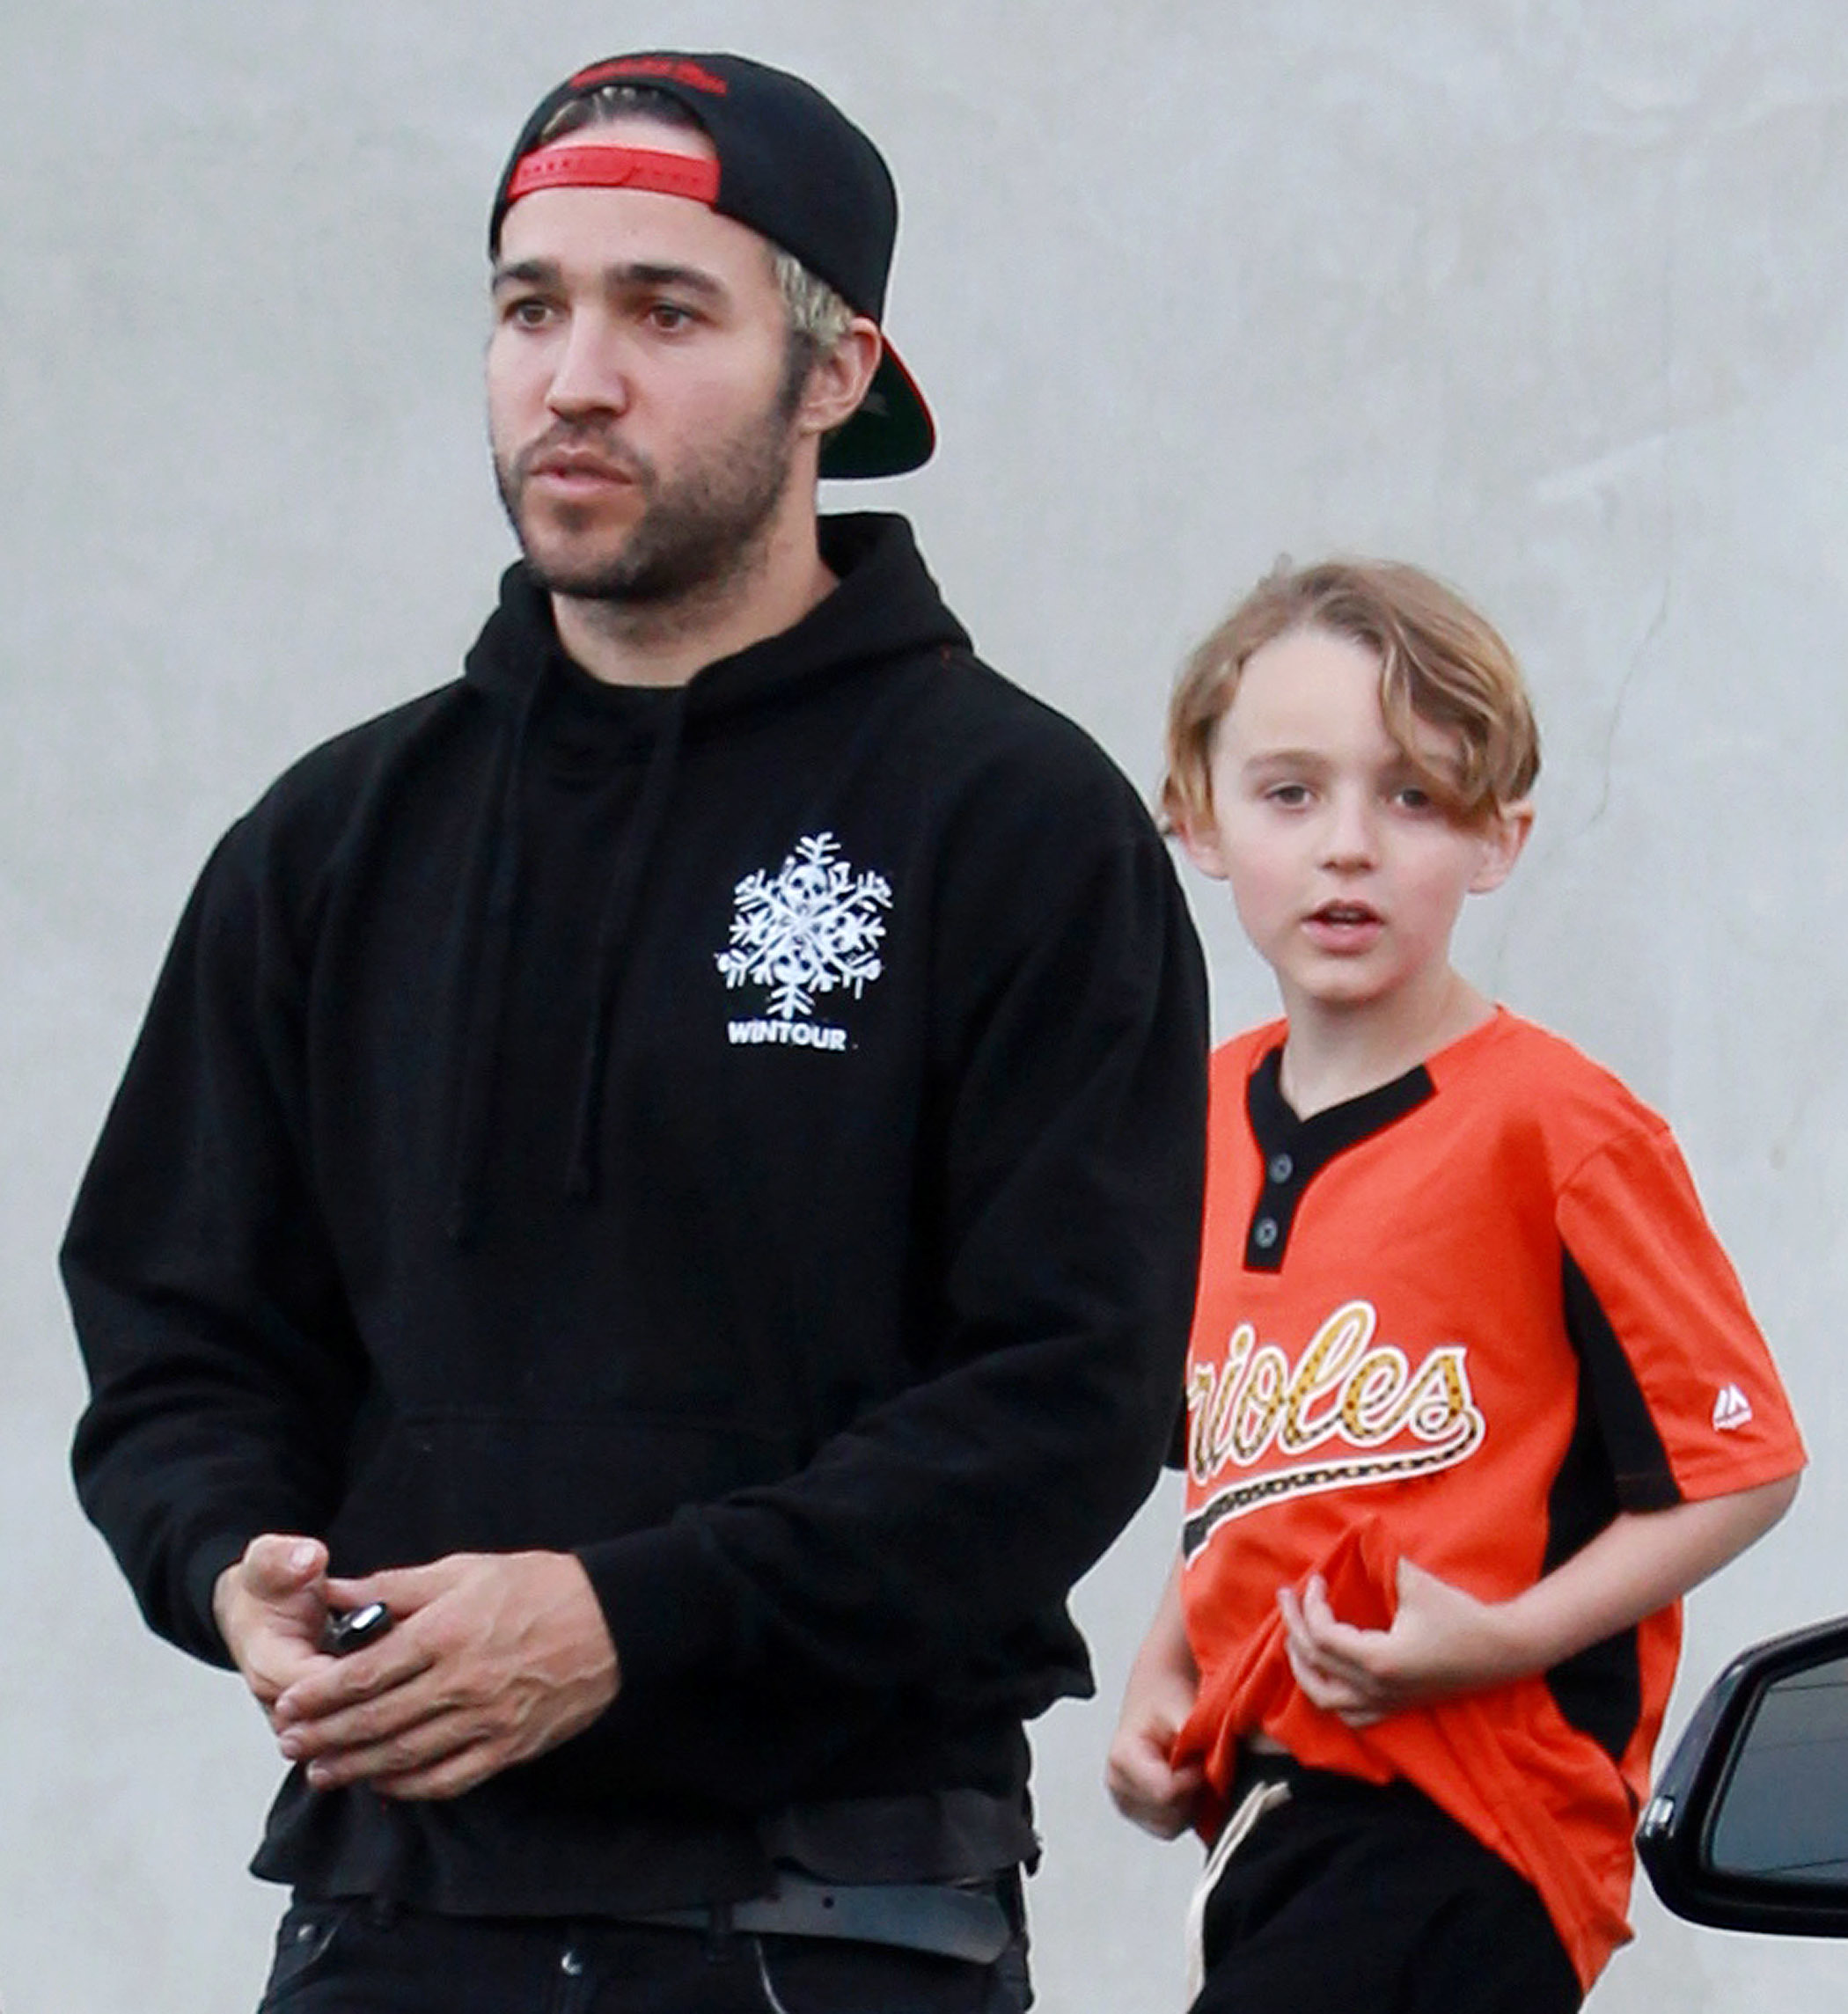 Pete Wentz and son Bronx Wentz leave Maxfield in Los Angeles on April 11, 2016.